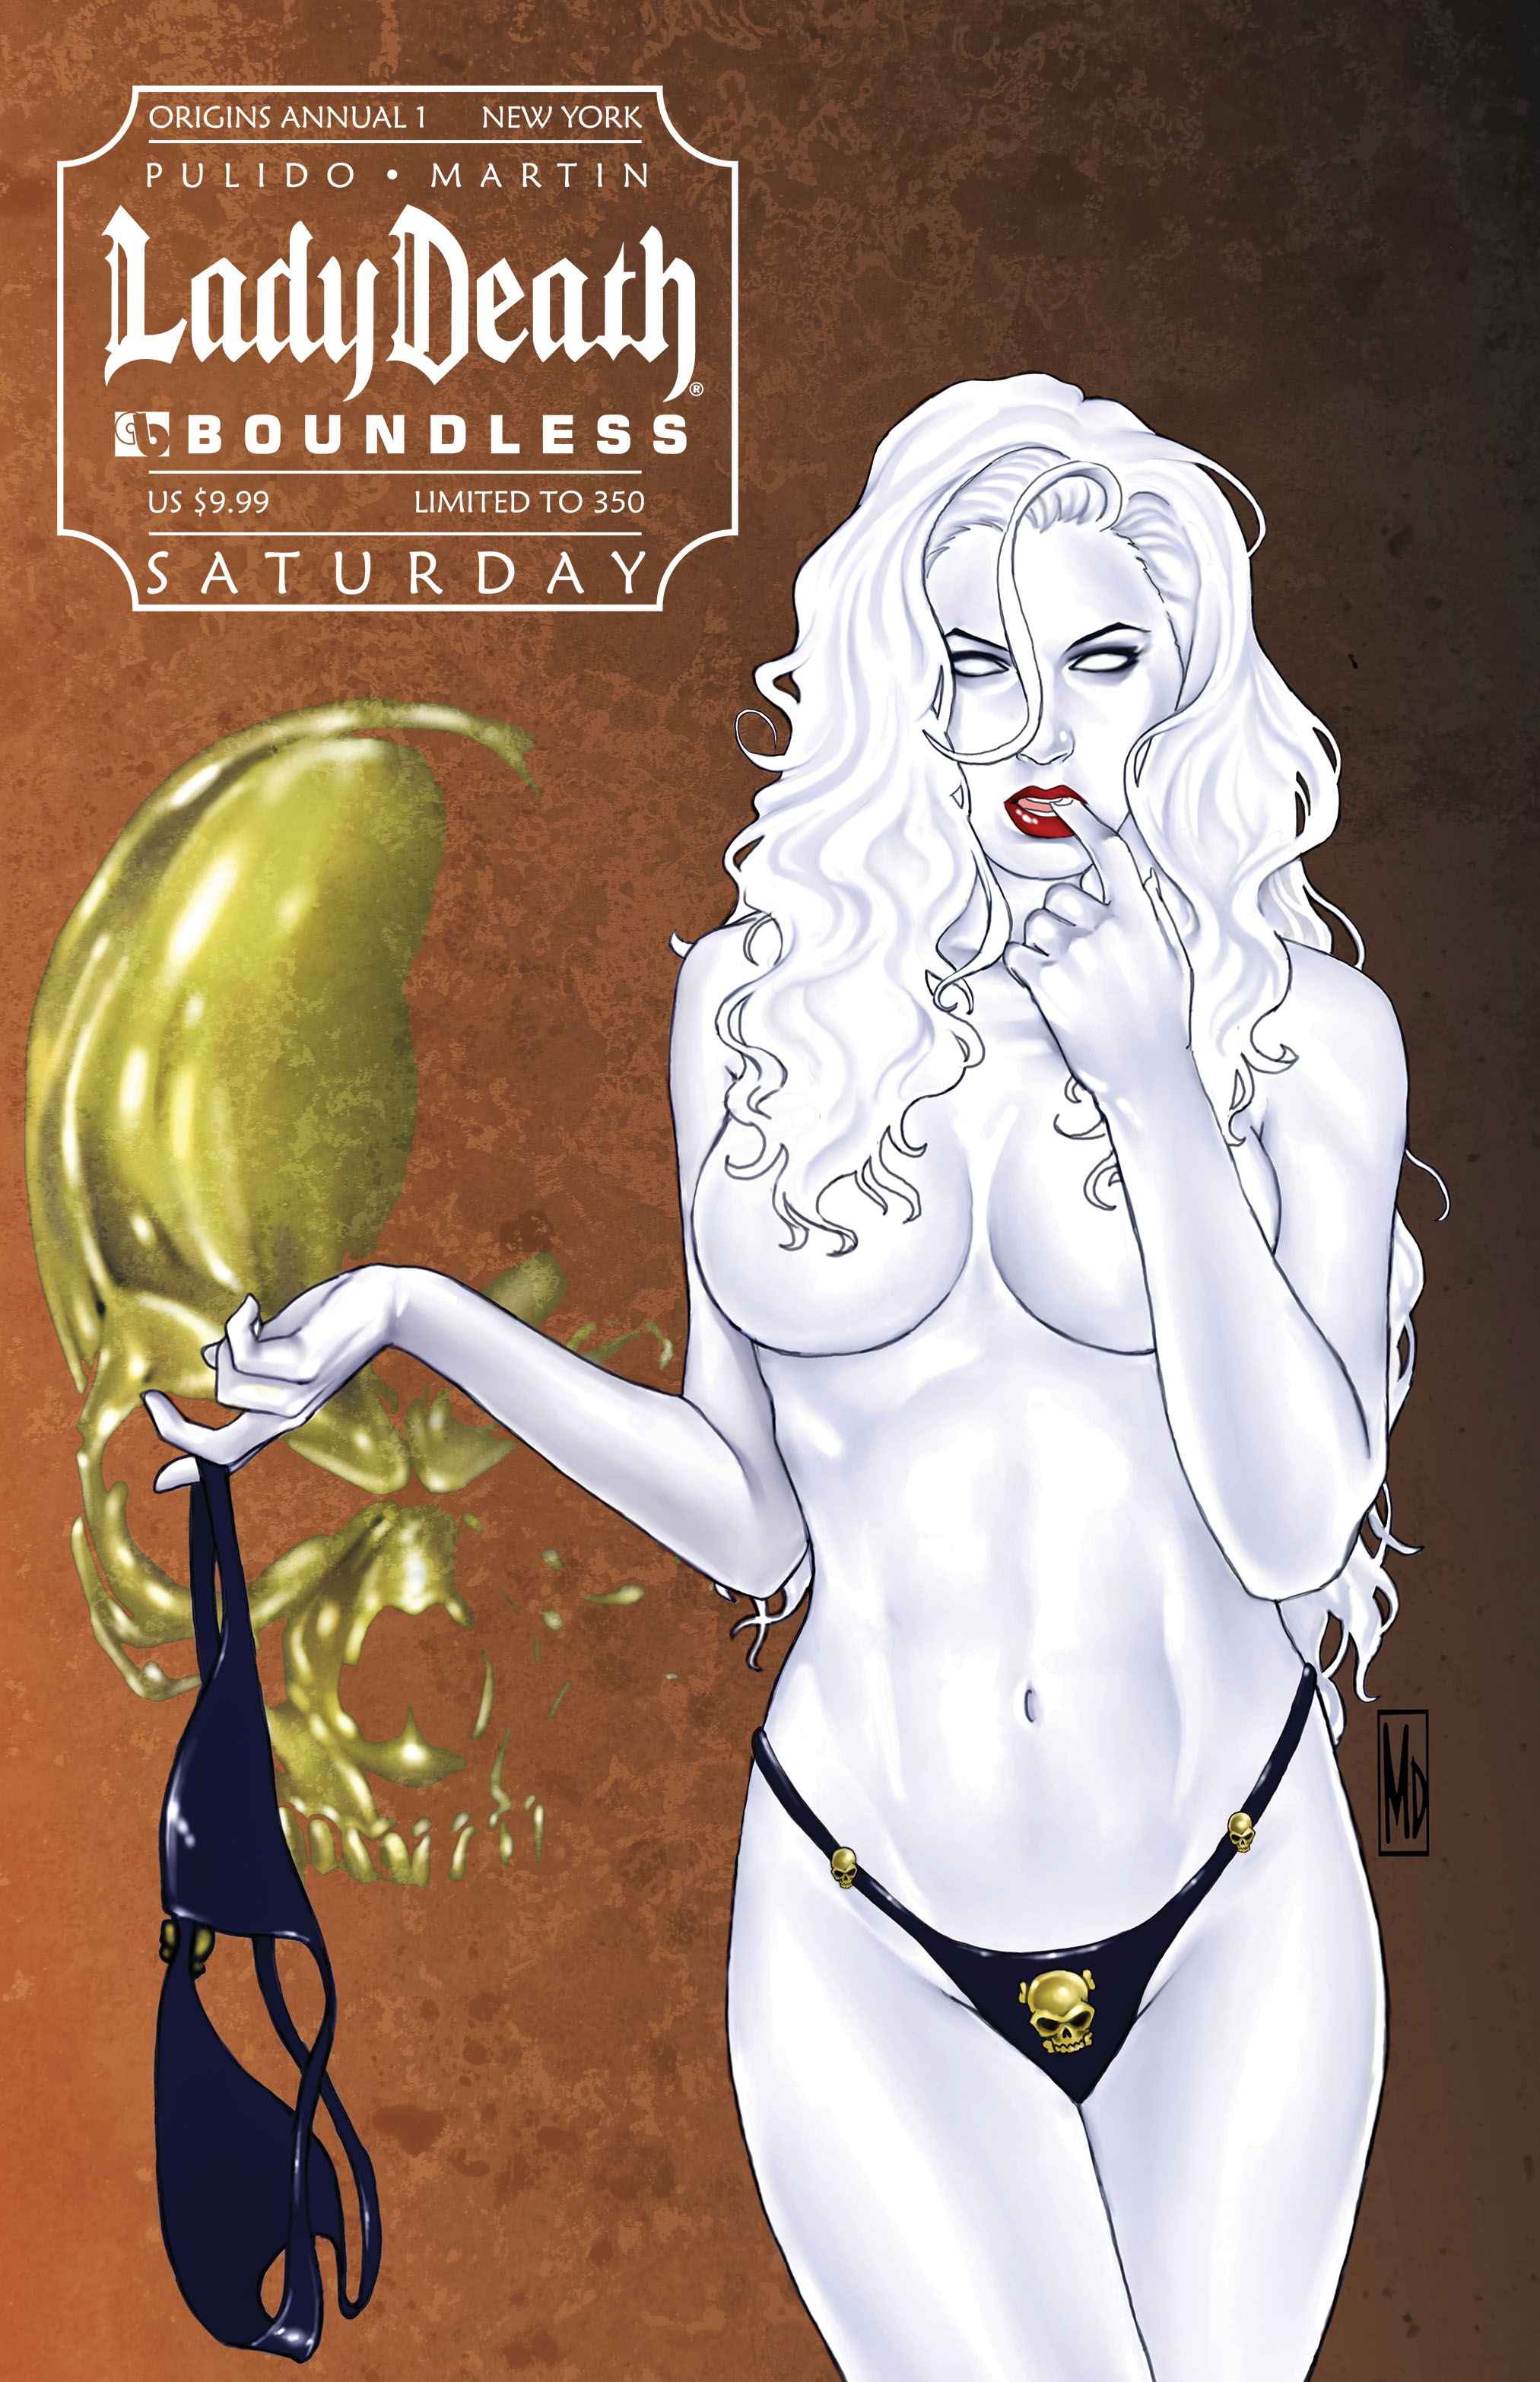 LADY DEATH ORIGINS ANNUAL #1 NEW YORK SATURDAY (MR)